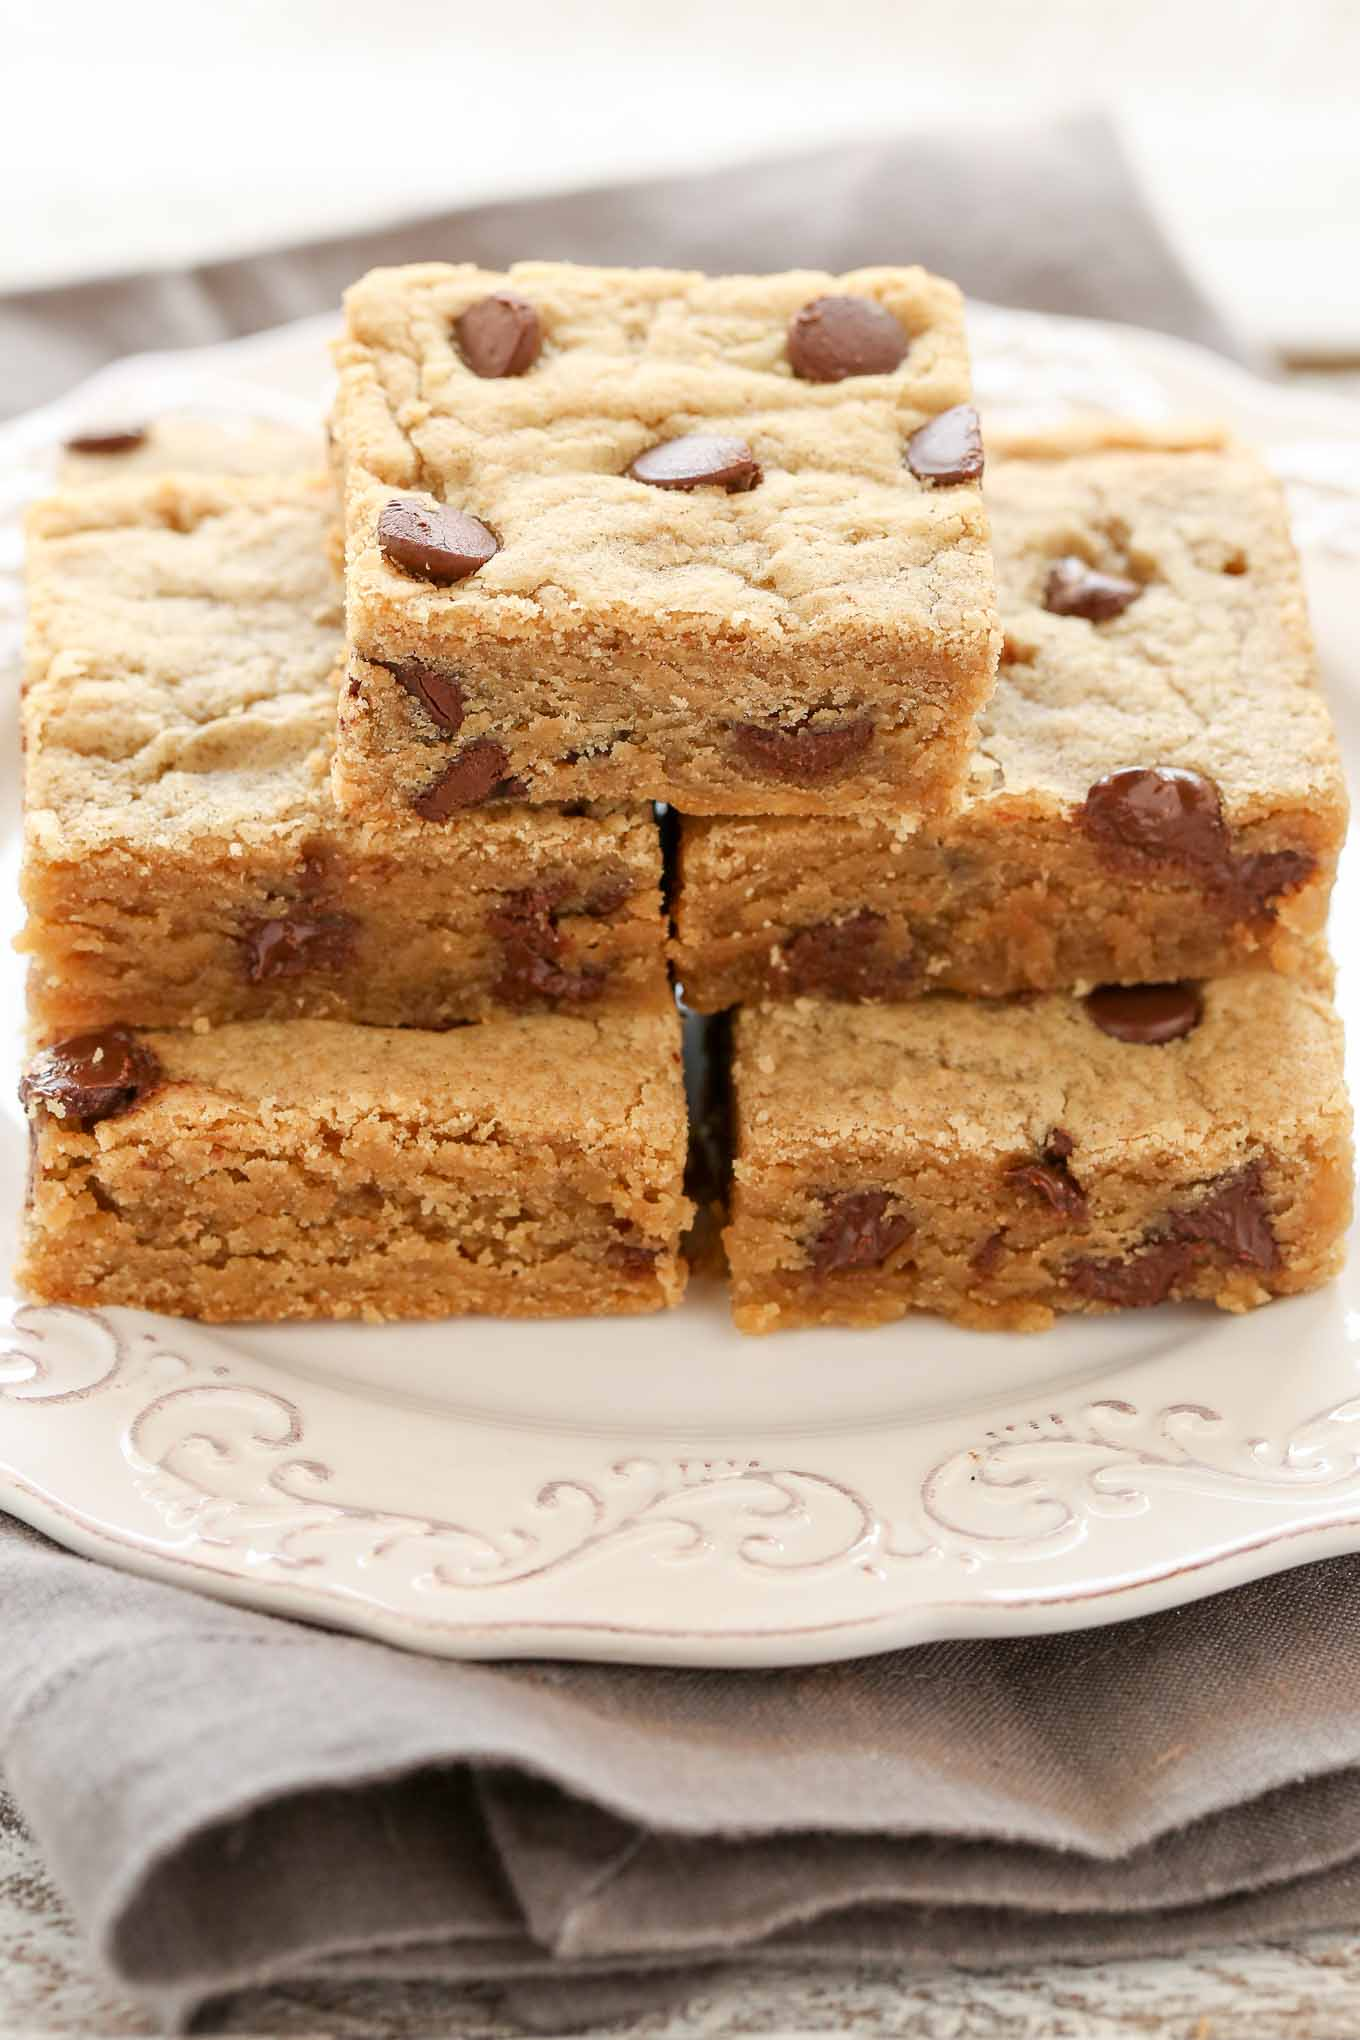 Five peanut butter chocolate chip bars stacked on a white plate.